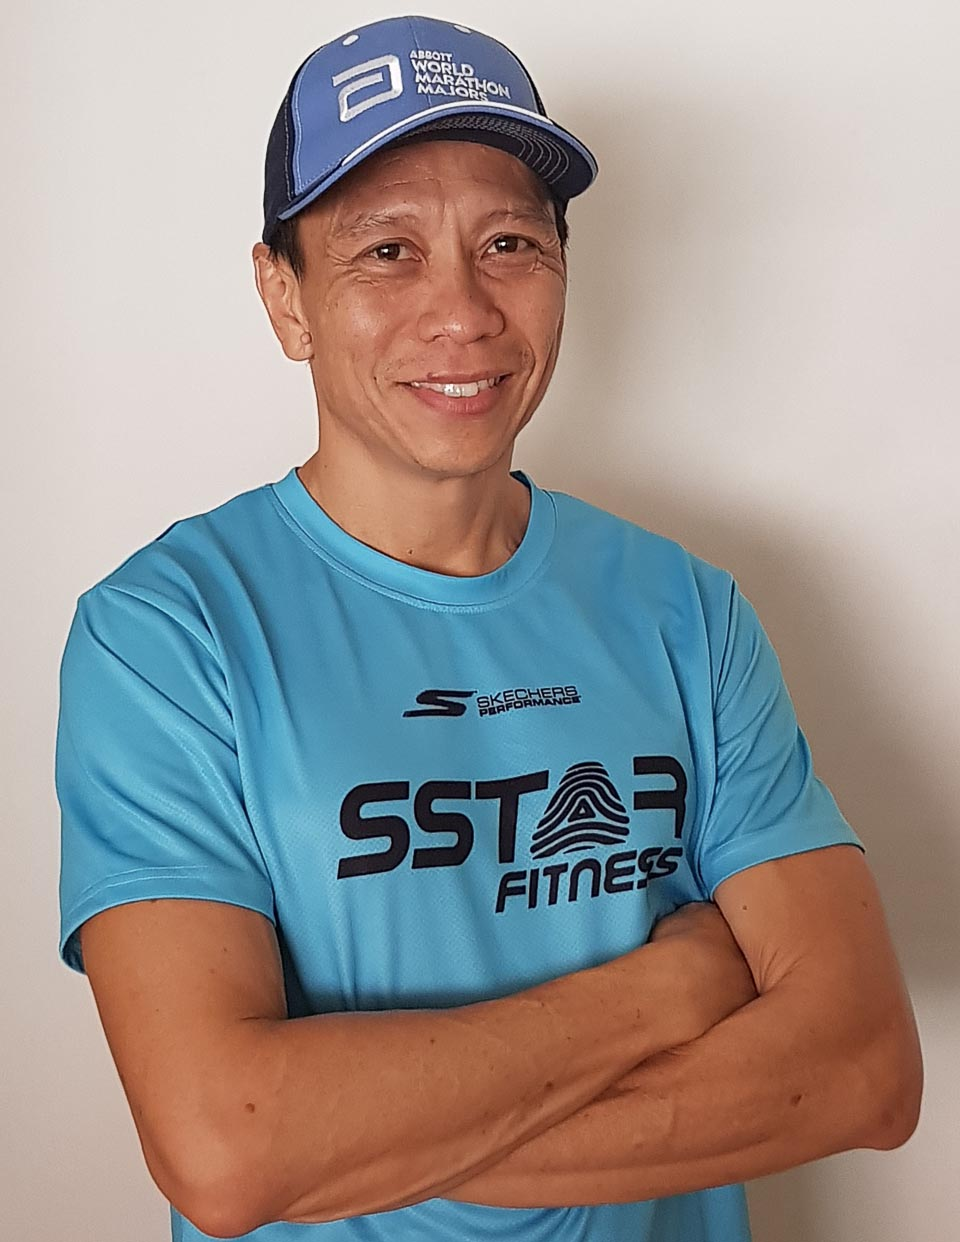 Coach Andrew Cheong: Enjoy the Process of Training Rather Than Focus on the Outcomes